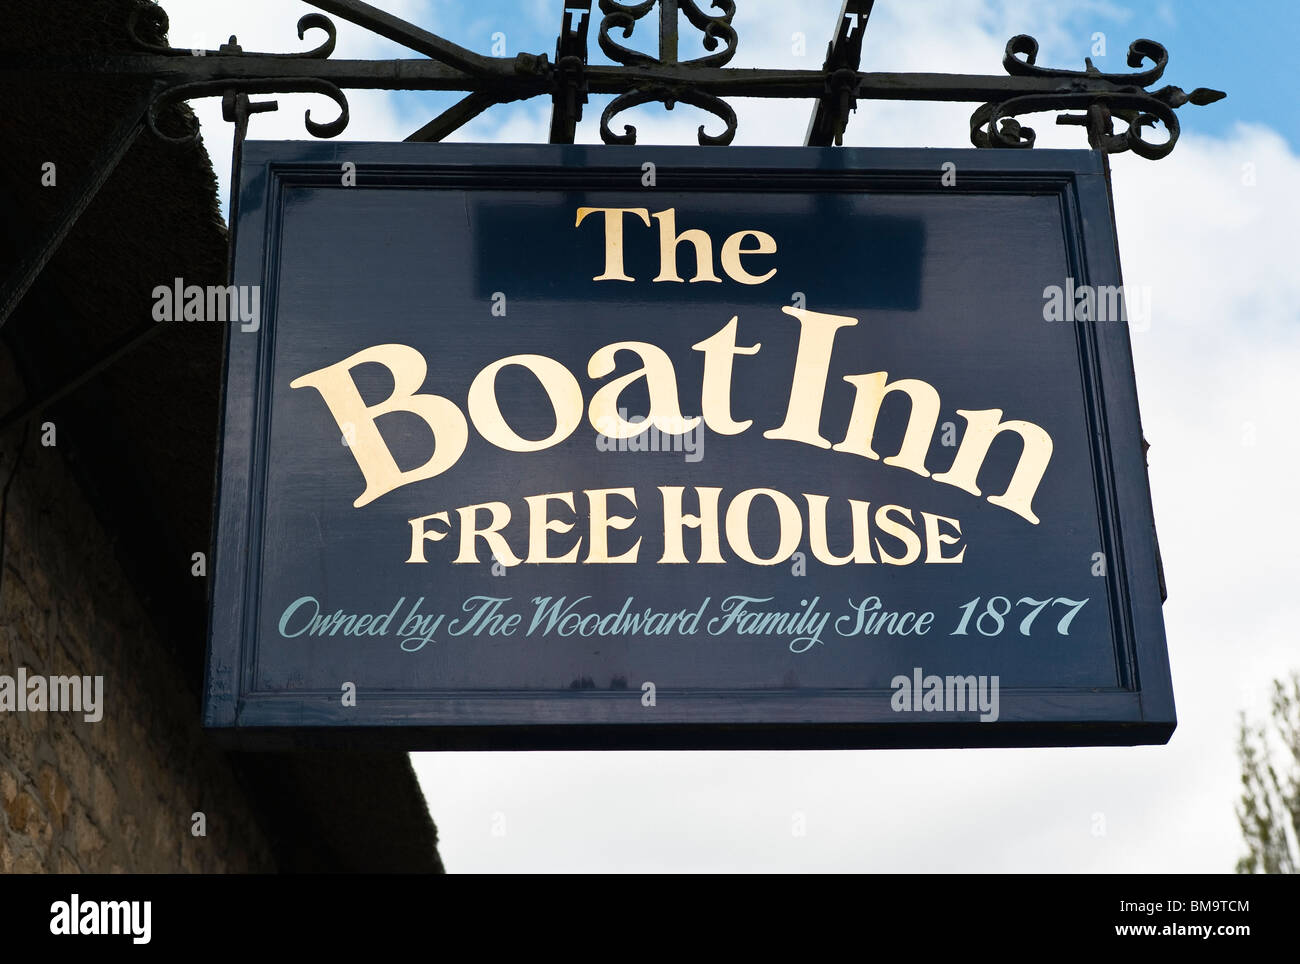 The Boat Inn sign at 'Stoke Bruerne' UK - Stock Image